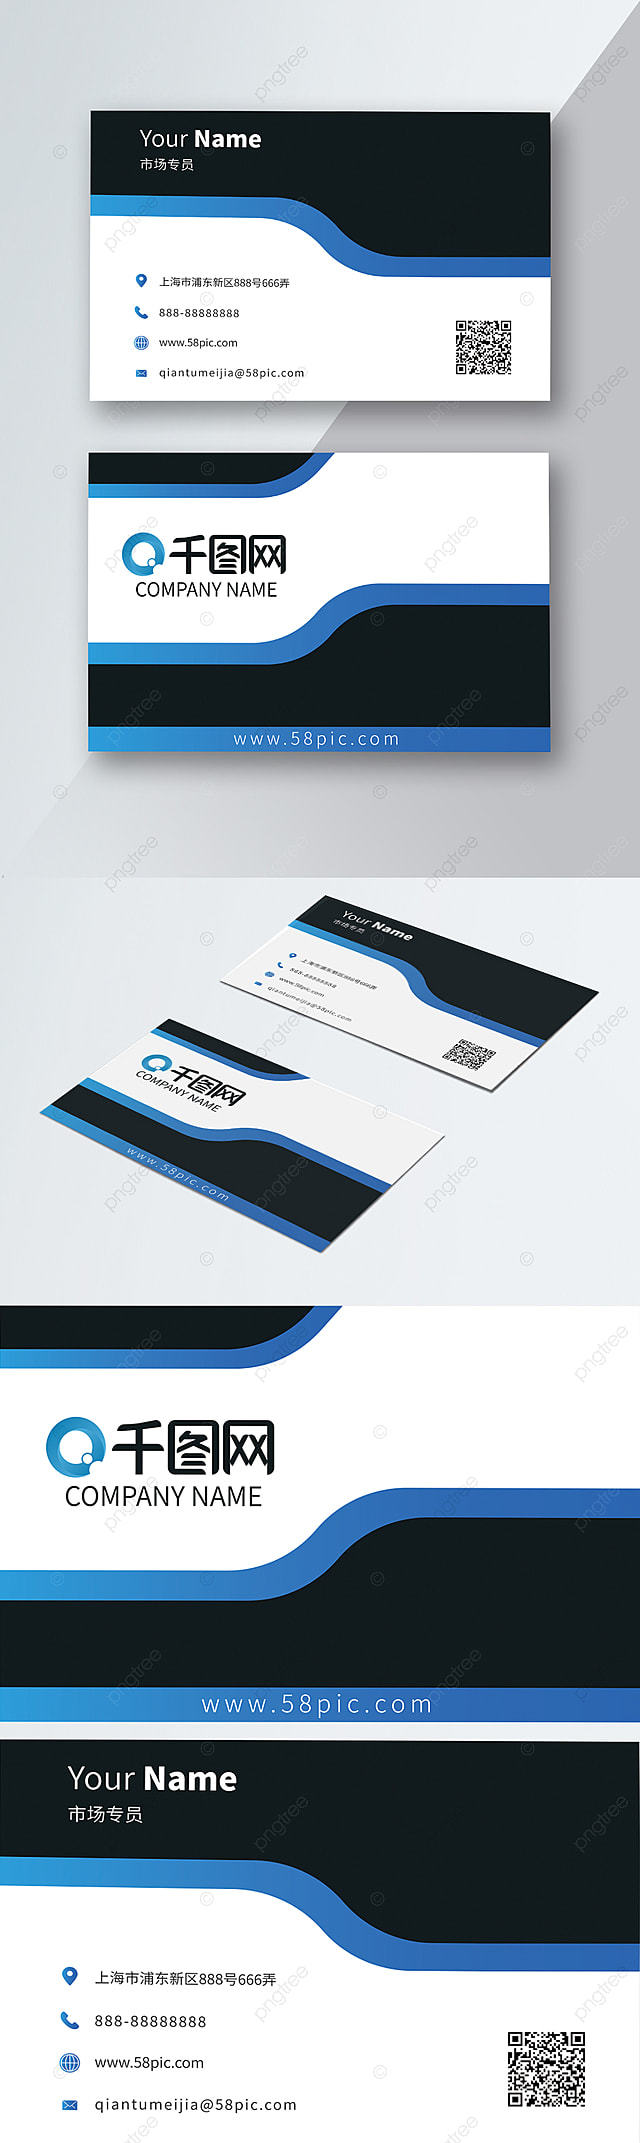 Taxi Business Card Taxi Service Business Card Taxi Driver